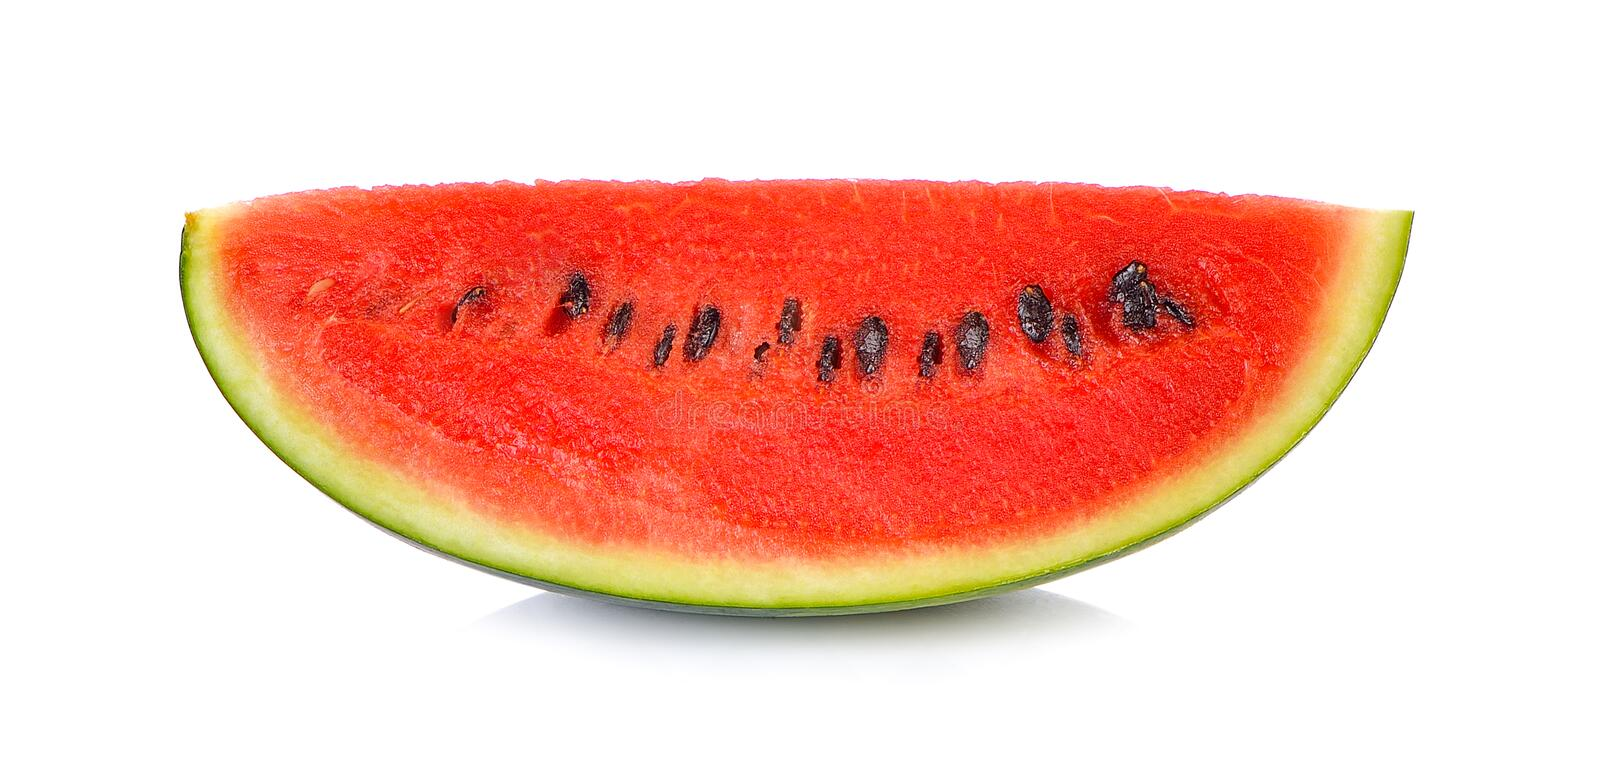 Sliced ripe watermelon isolated on white background cutout stock photography